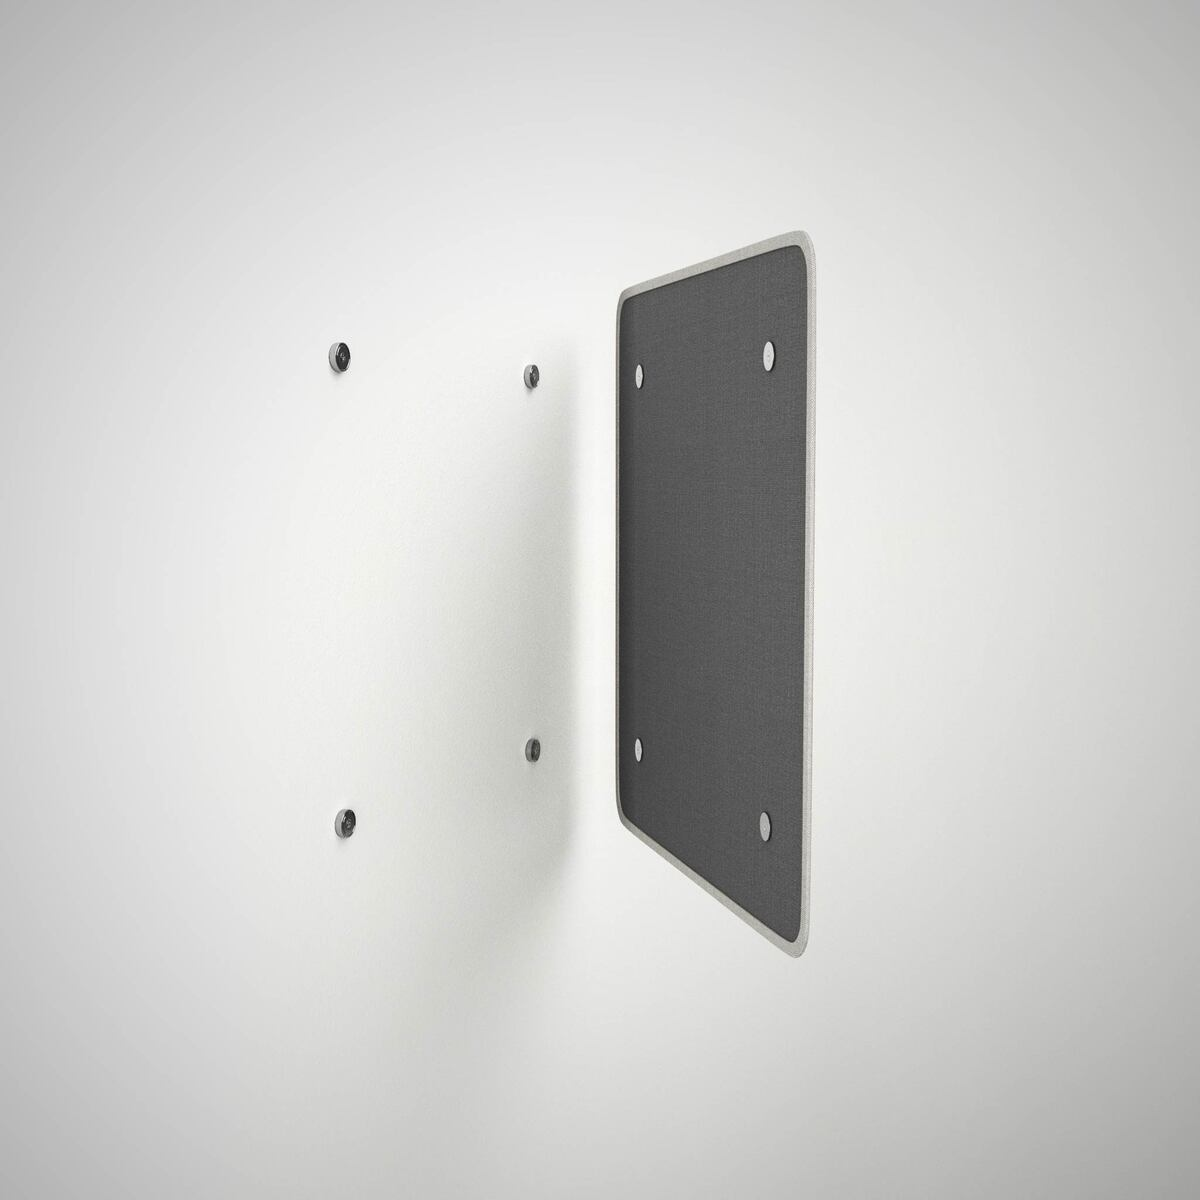 Wall adherence system with magnets.